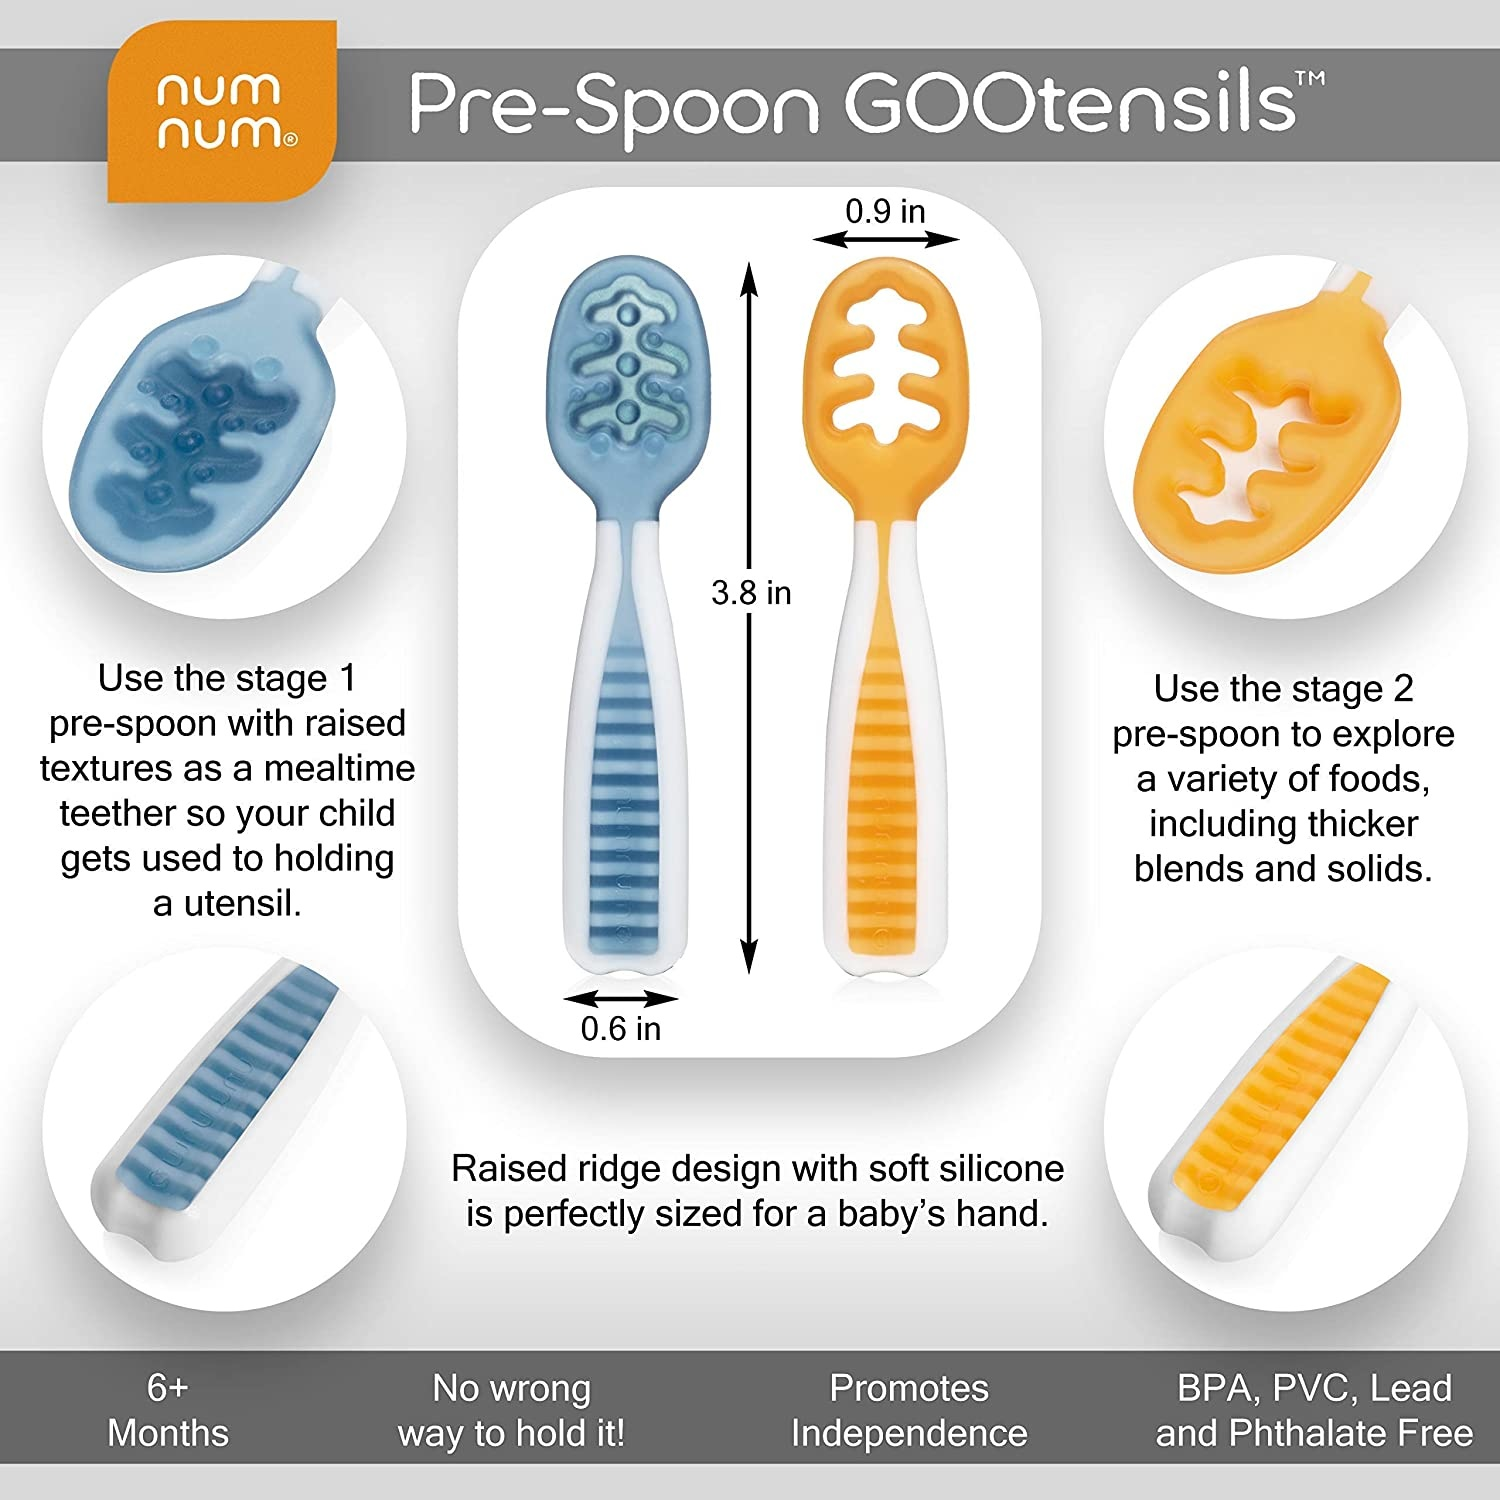 First Stage + Second Stage Toddler Utensil NumNum Pre-Spoon GOOtensils | BPA Free Silicone Self Feeding Baby Baby Spoon Set Lilac//Rosebud 2-Pack